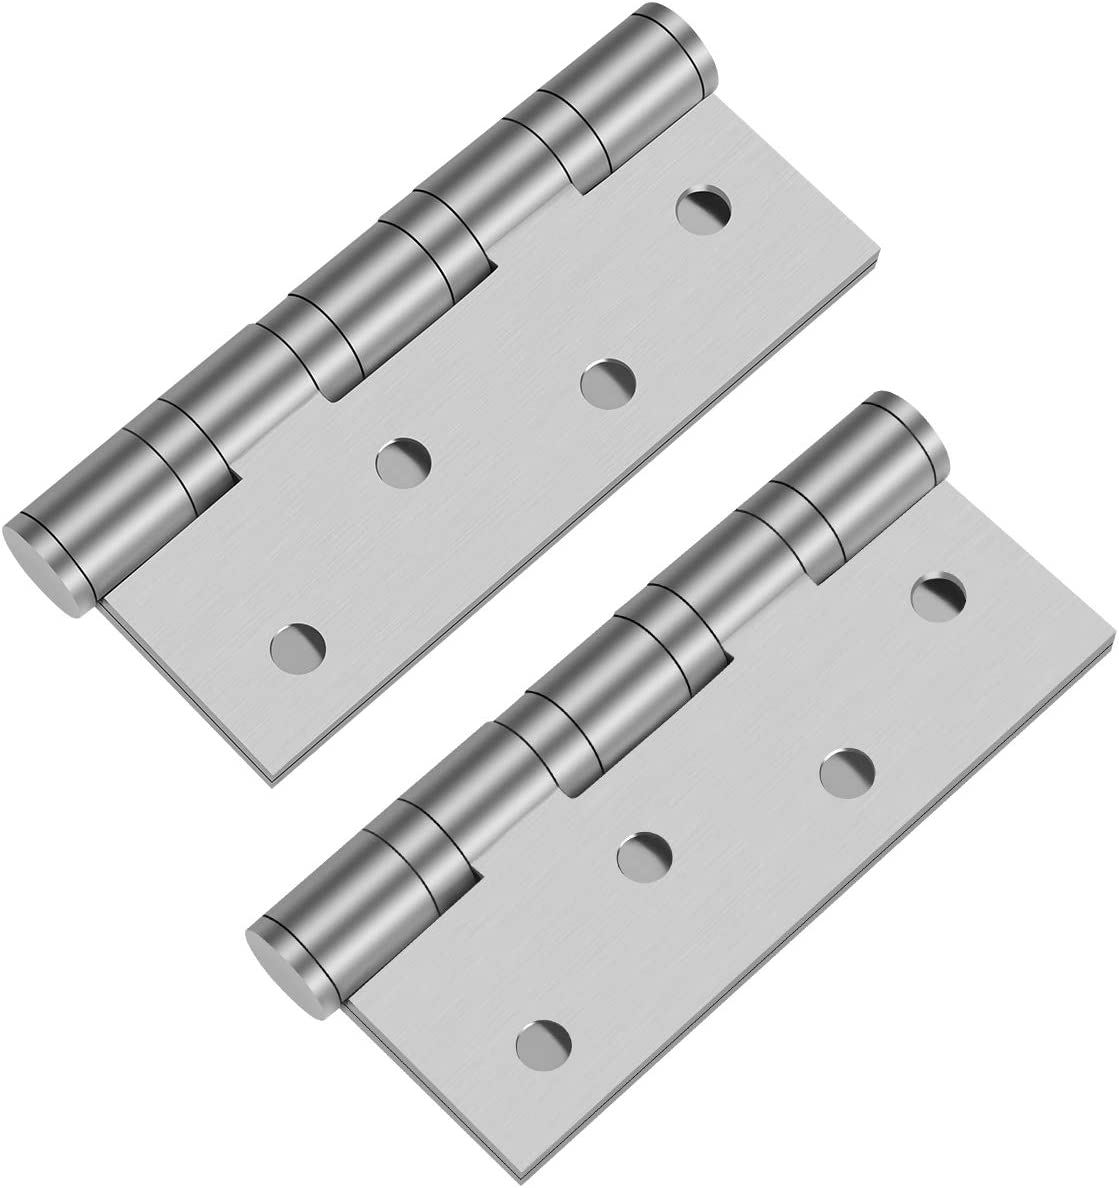 Brushed 304 Stainless Steel 4''x3'' Bearing Door Hinges with Square Corner Pack of 2-Silver